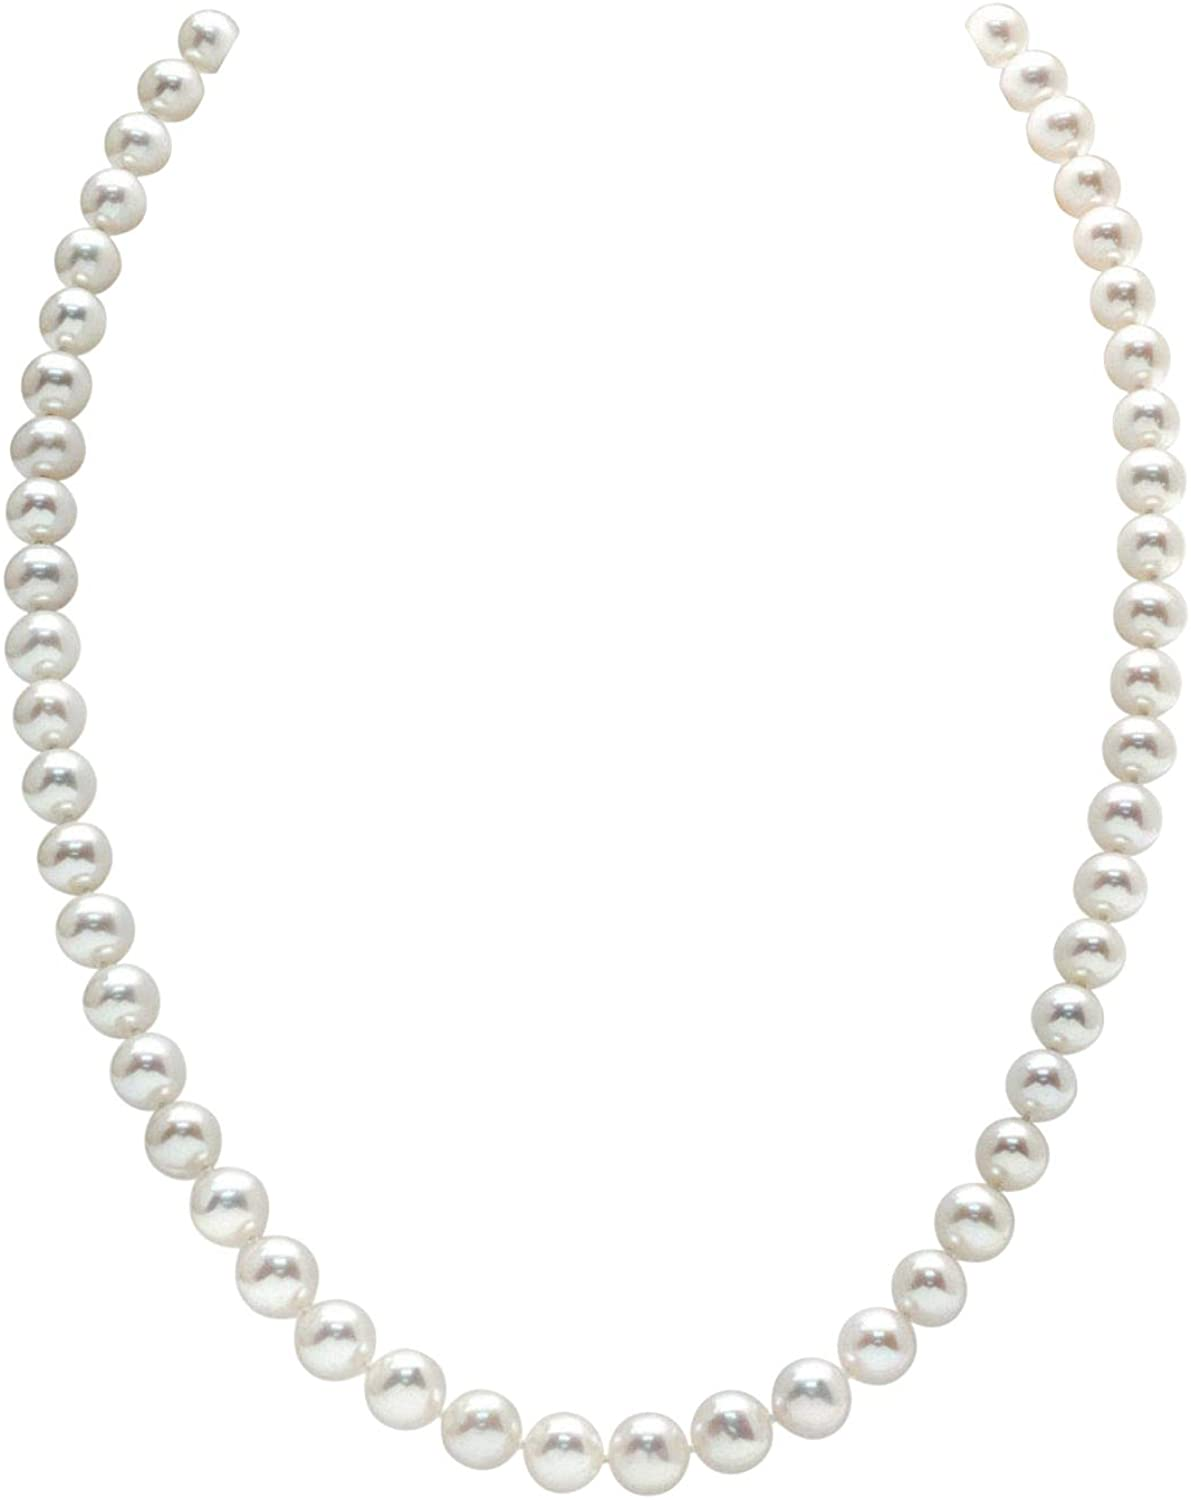 """7-8mm Round White Freshwater Cultured Pearl Necklace, 20"""" Matinee Length - AAA Quality"""